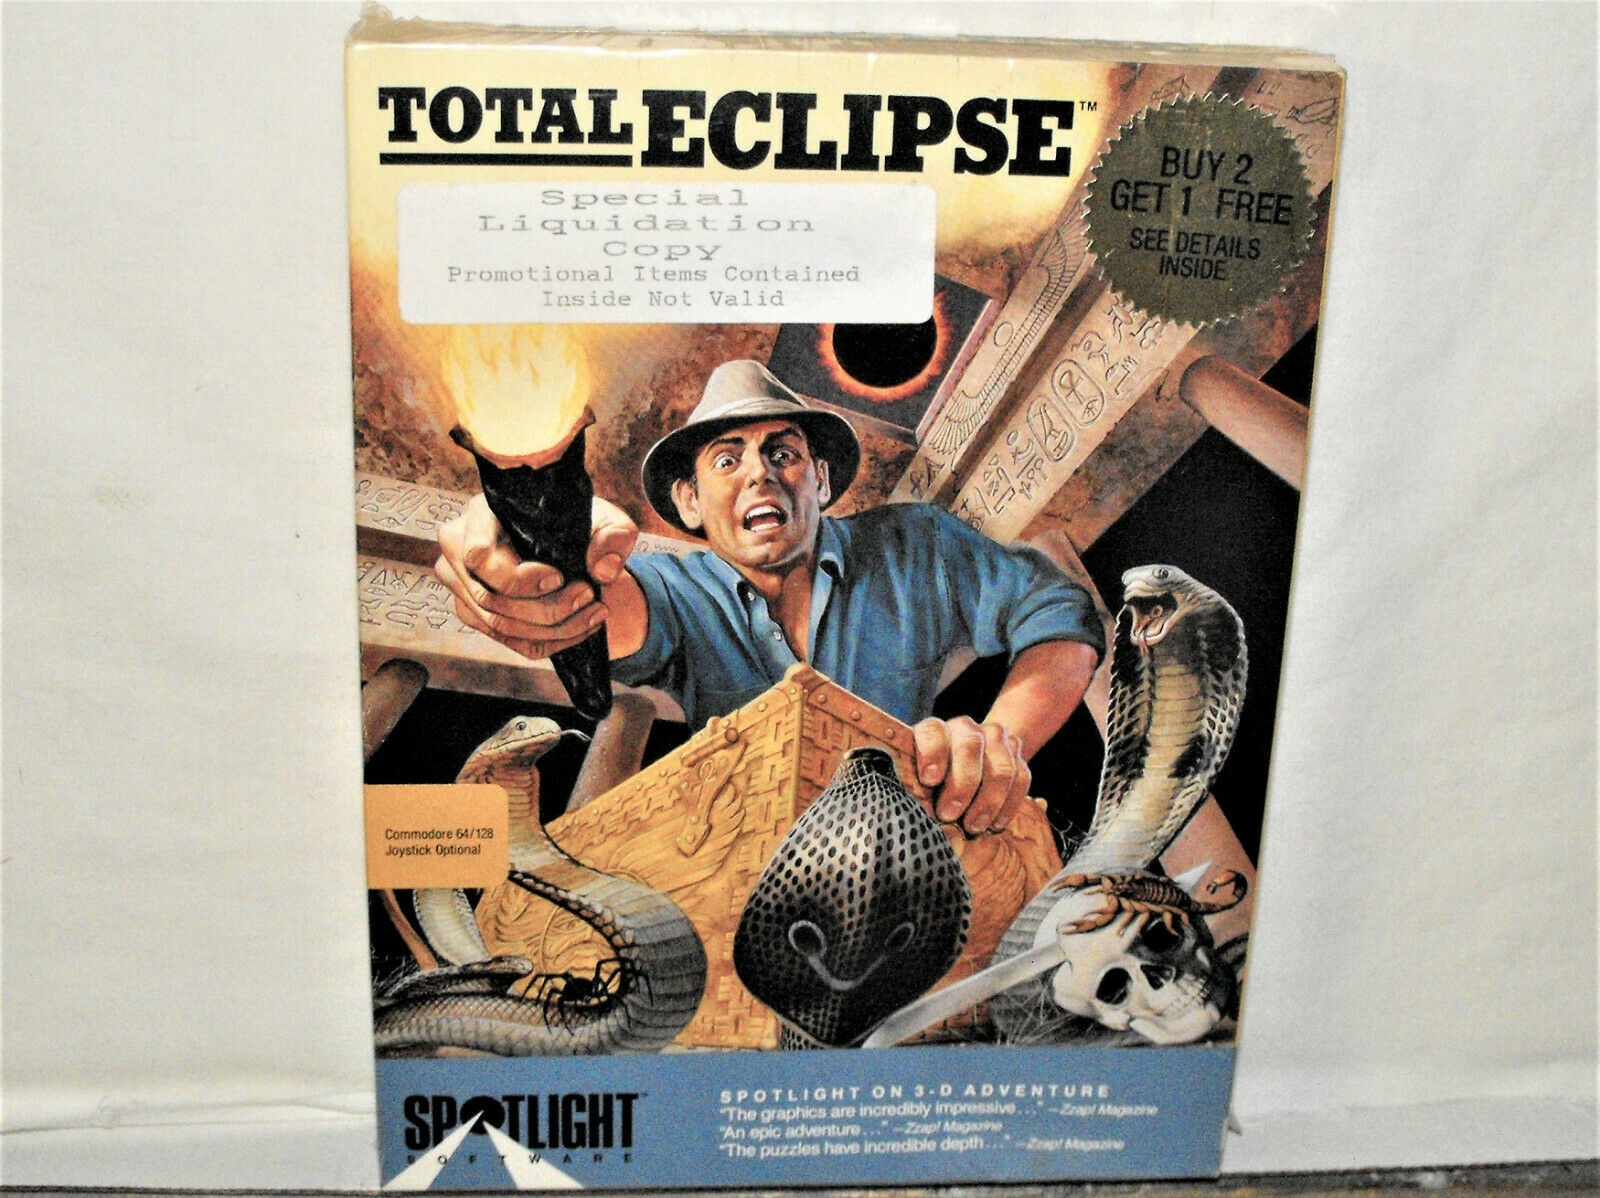 Computer Games - Commodore 64/128 Computer Game TOTAL ECLIPSE Spotlight Software Disk Sealed Box